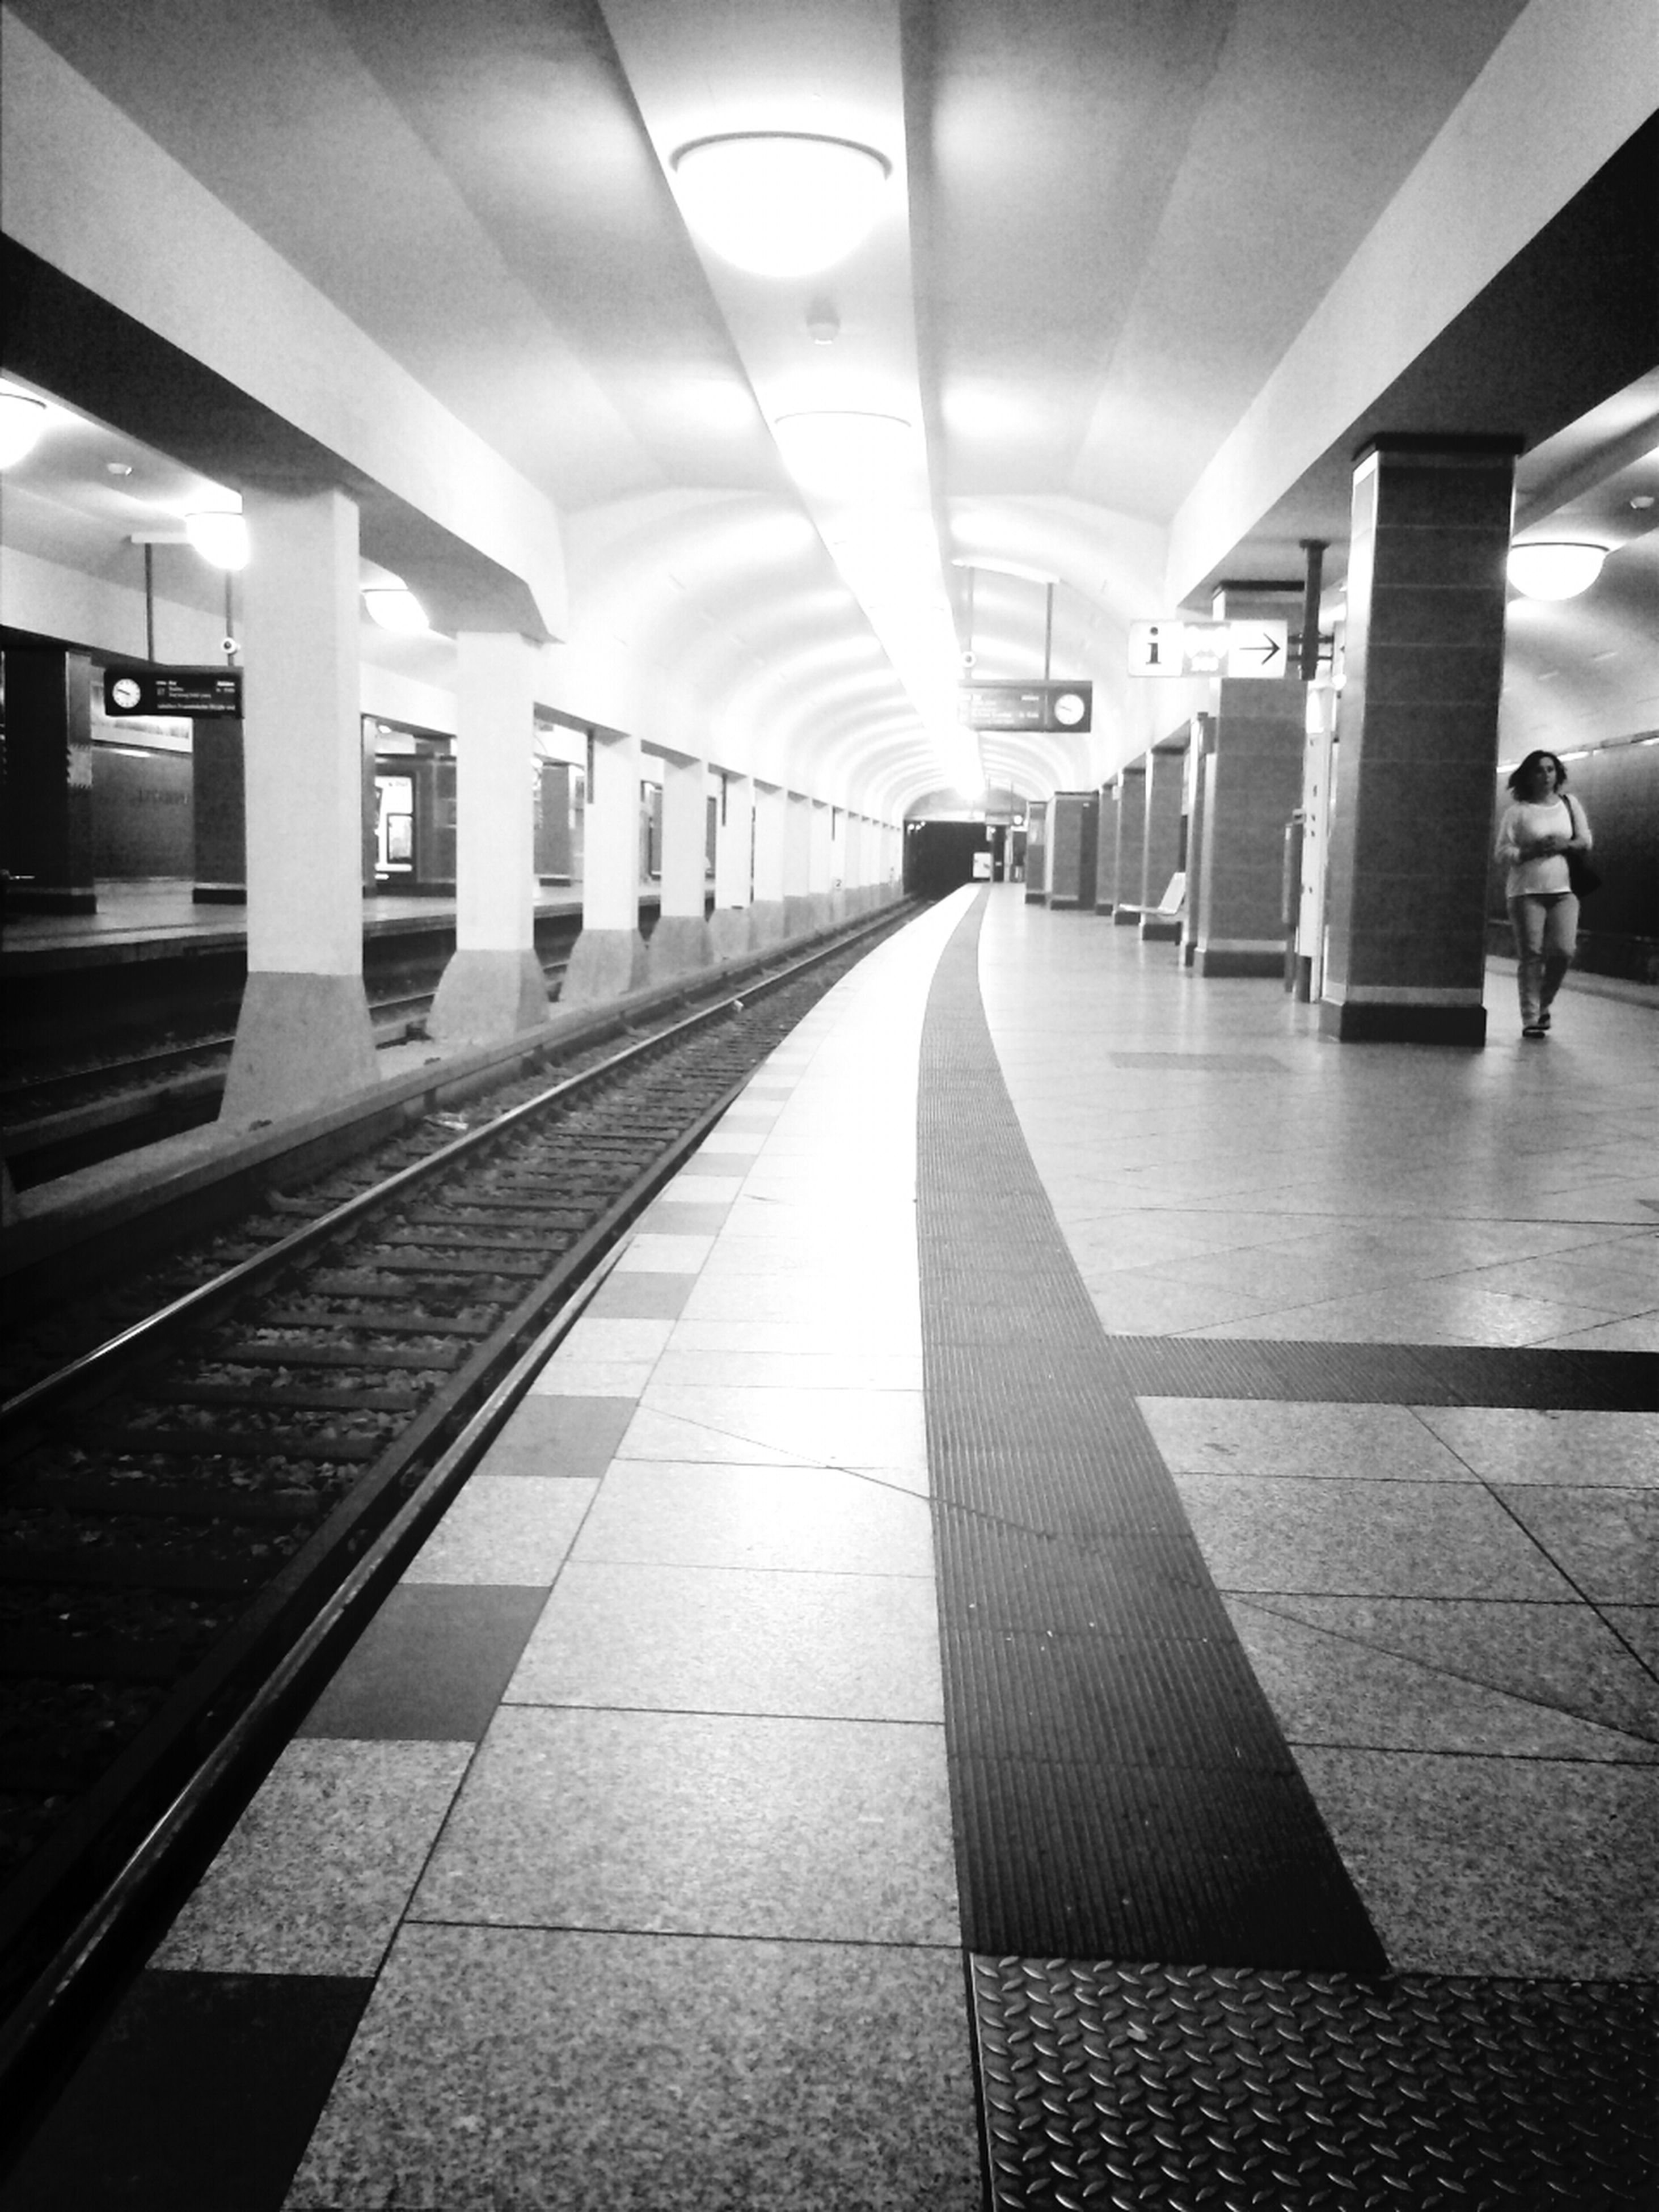 indoors, ceiling, the way forward, transportation, illuminated, railroad station platform, architecture, built structure, tiled floor, diminishing perspective, subway station, incidental people, railroad station, flooring, public transportation, subway, empty, rail transportation, vanishing point, architectural column